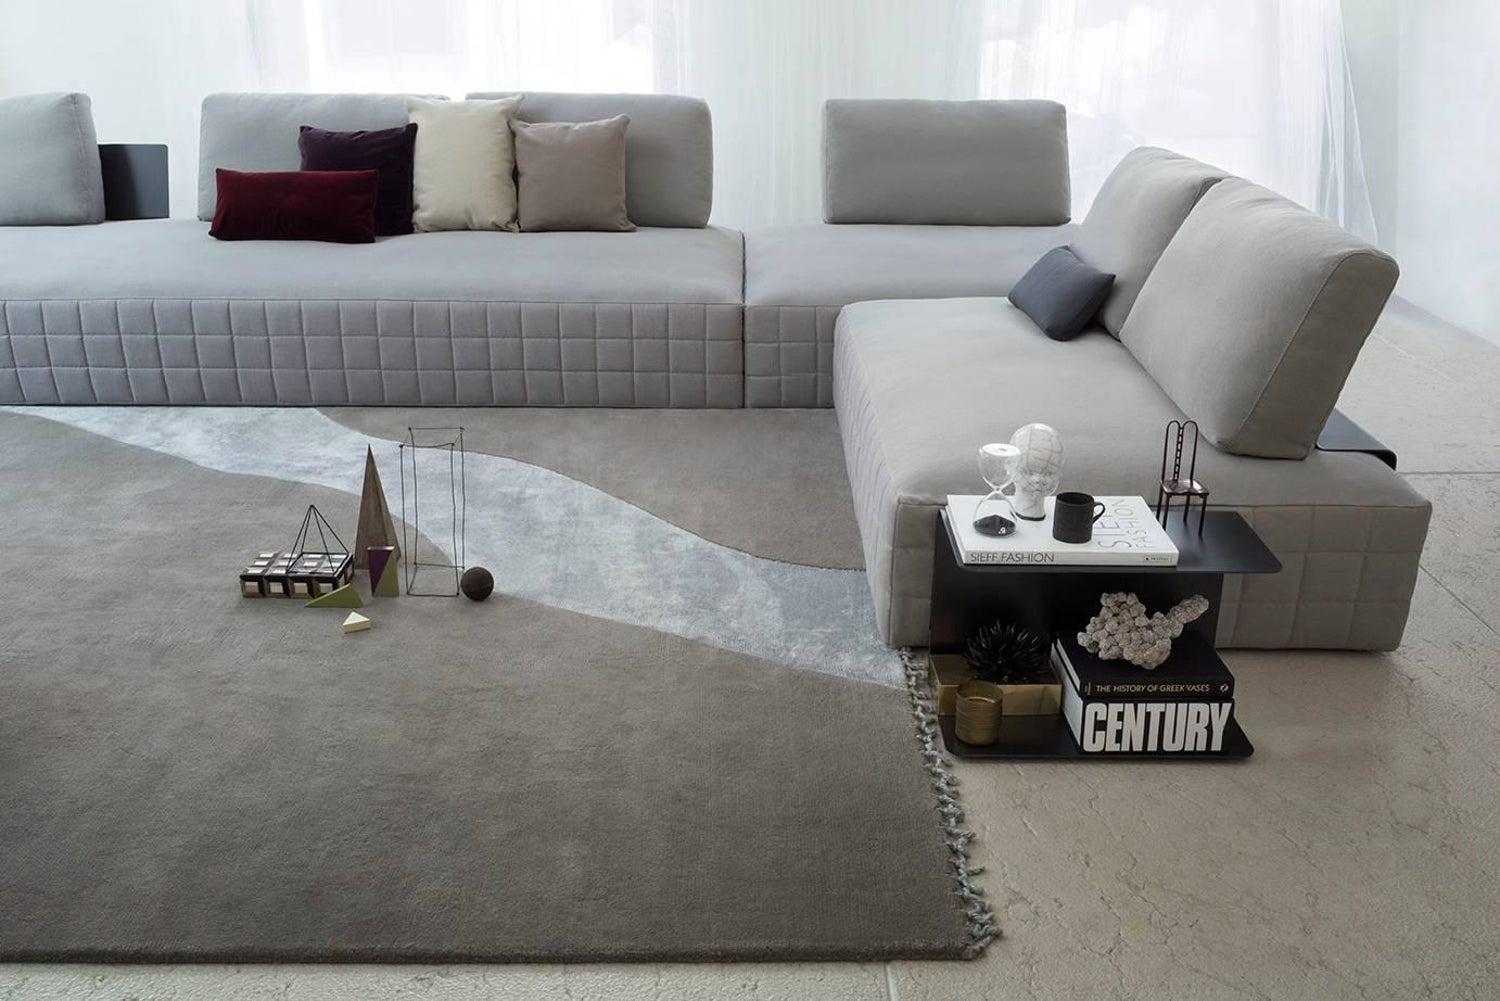 Italian Modular Sectional Sofa, Modern Design Made in Italy